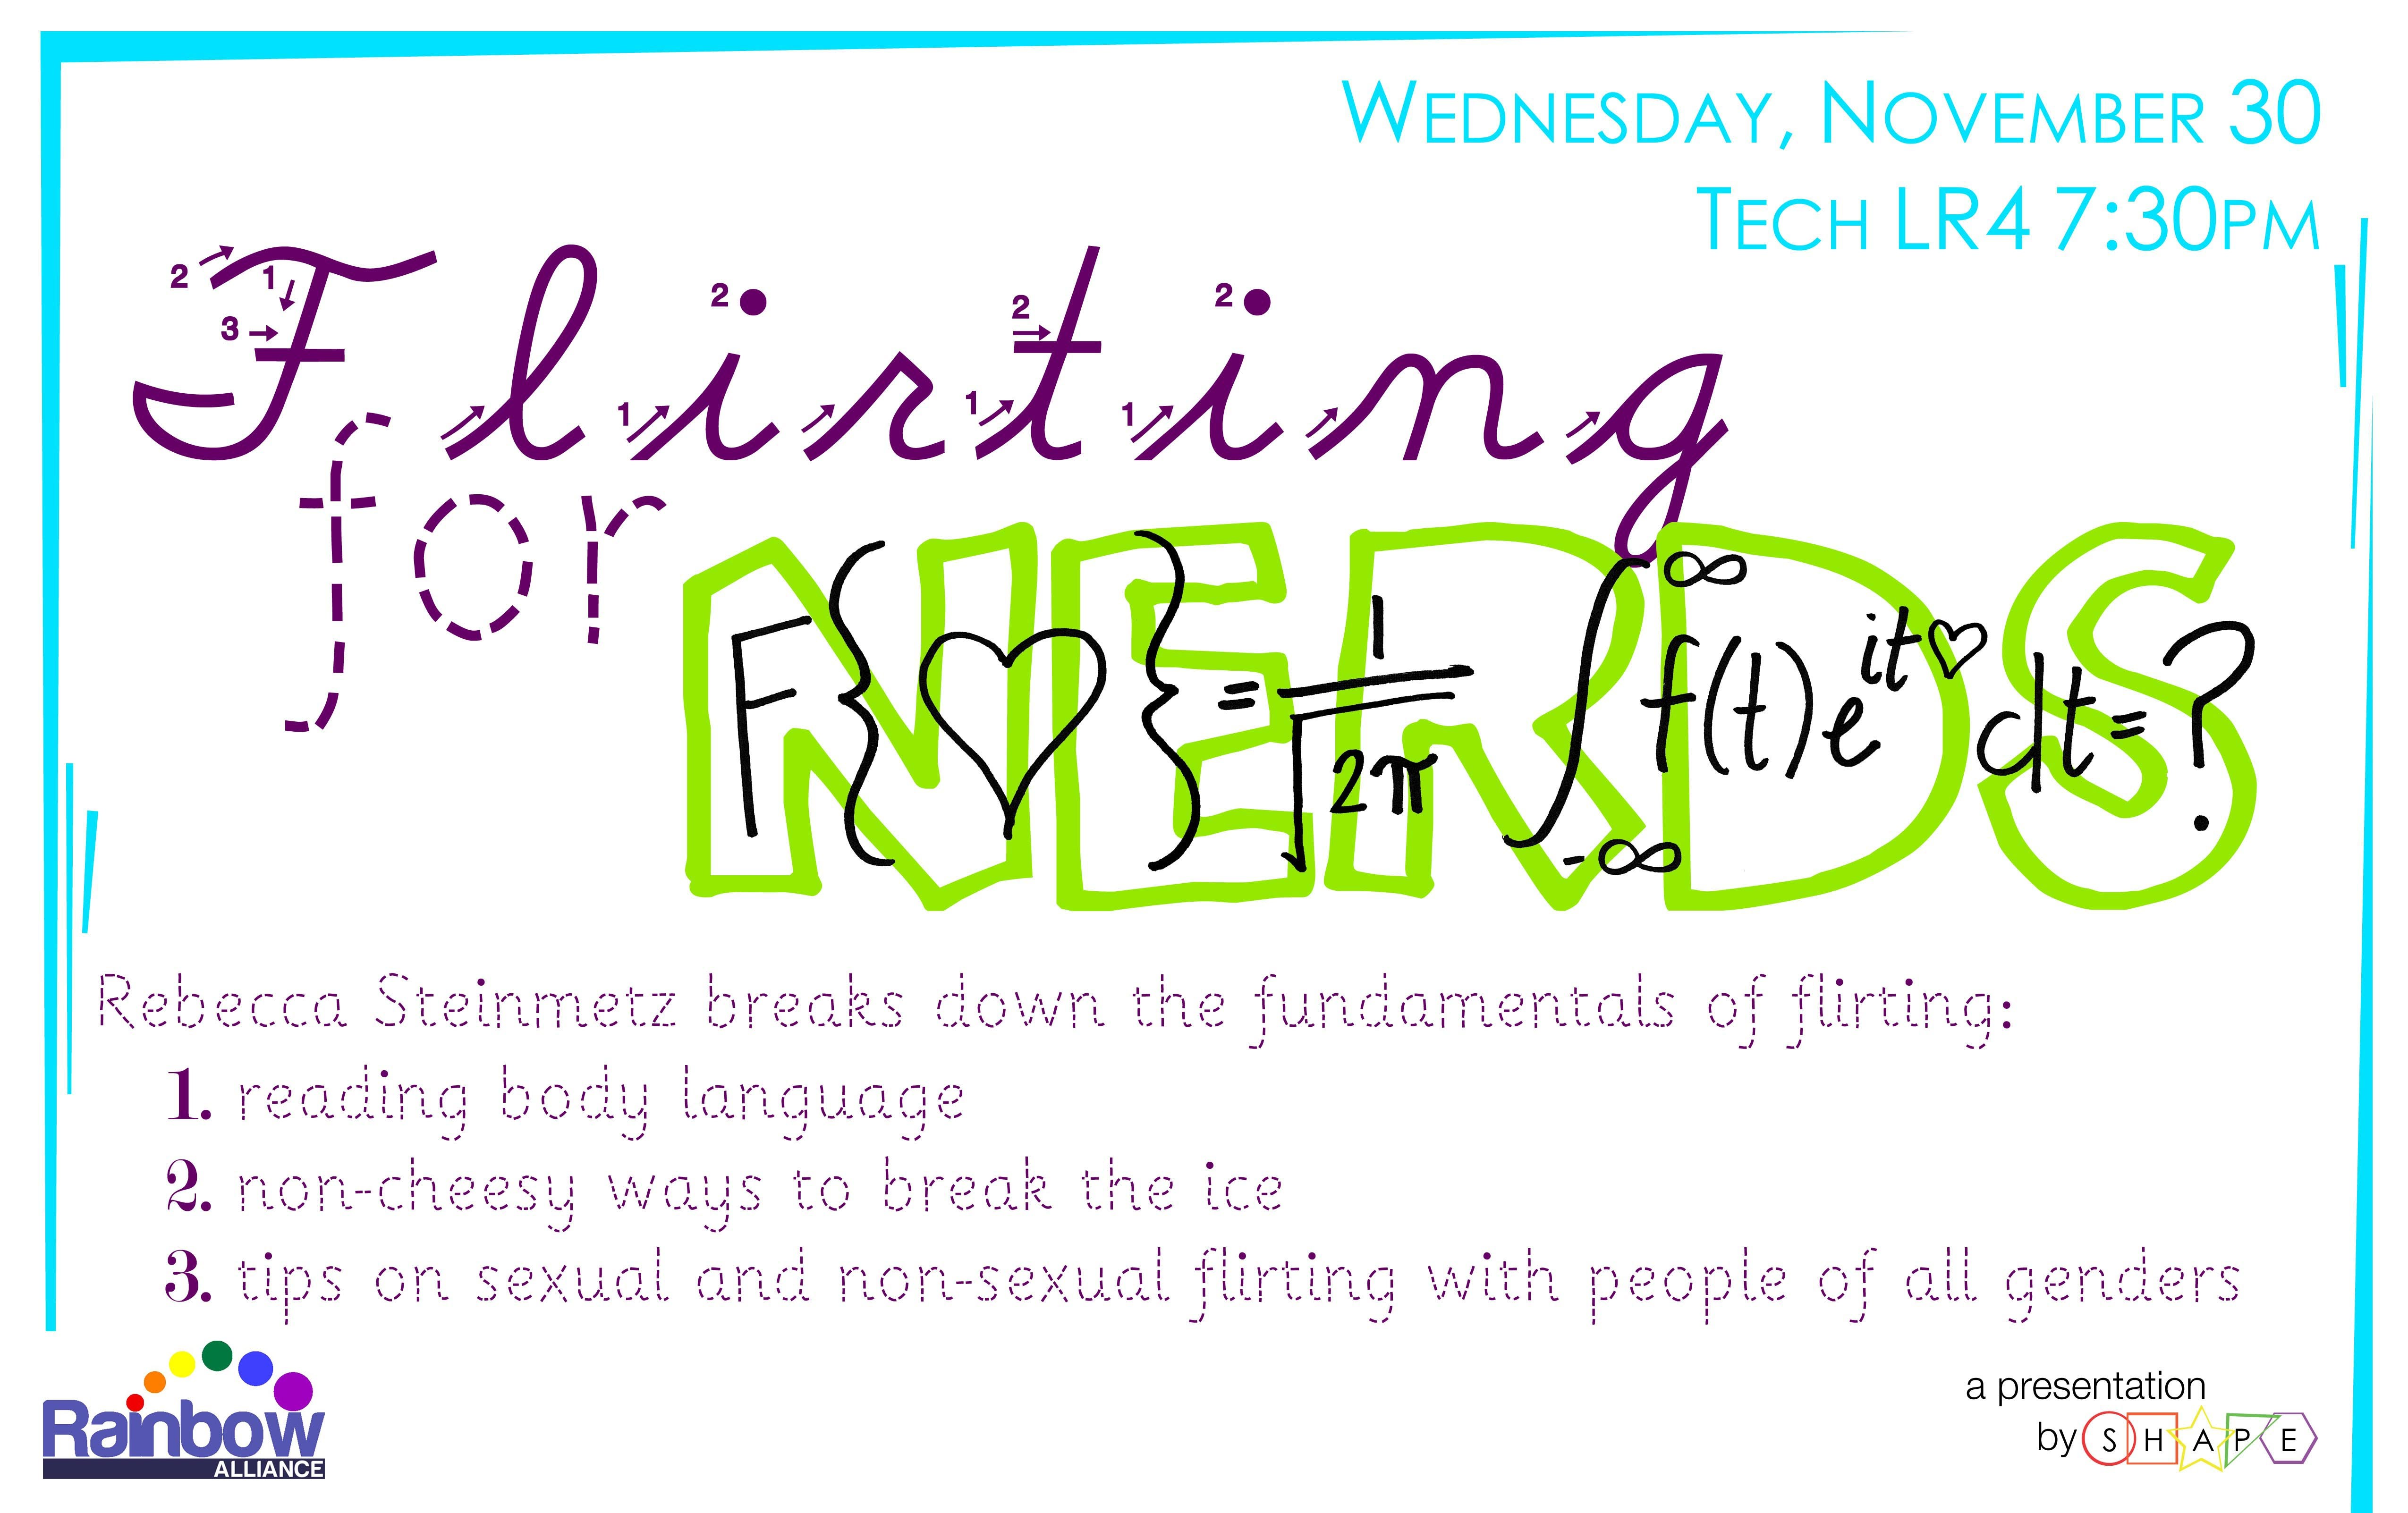 Flirting for Nerds on Wednesday, November 30 in Tech LR4 at 7:30PM: Rebecca Steinmetz breaks down the fundamentals of flirting: 1. reading body language, 2. non-cheesy ways to break the ice, 3. tips on sexual and non-sexual flirting with people of all genders